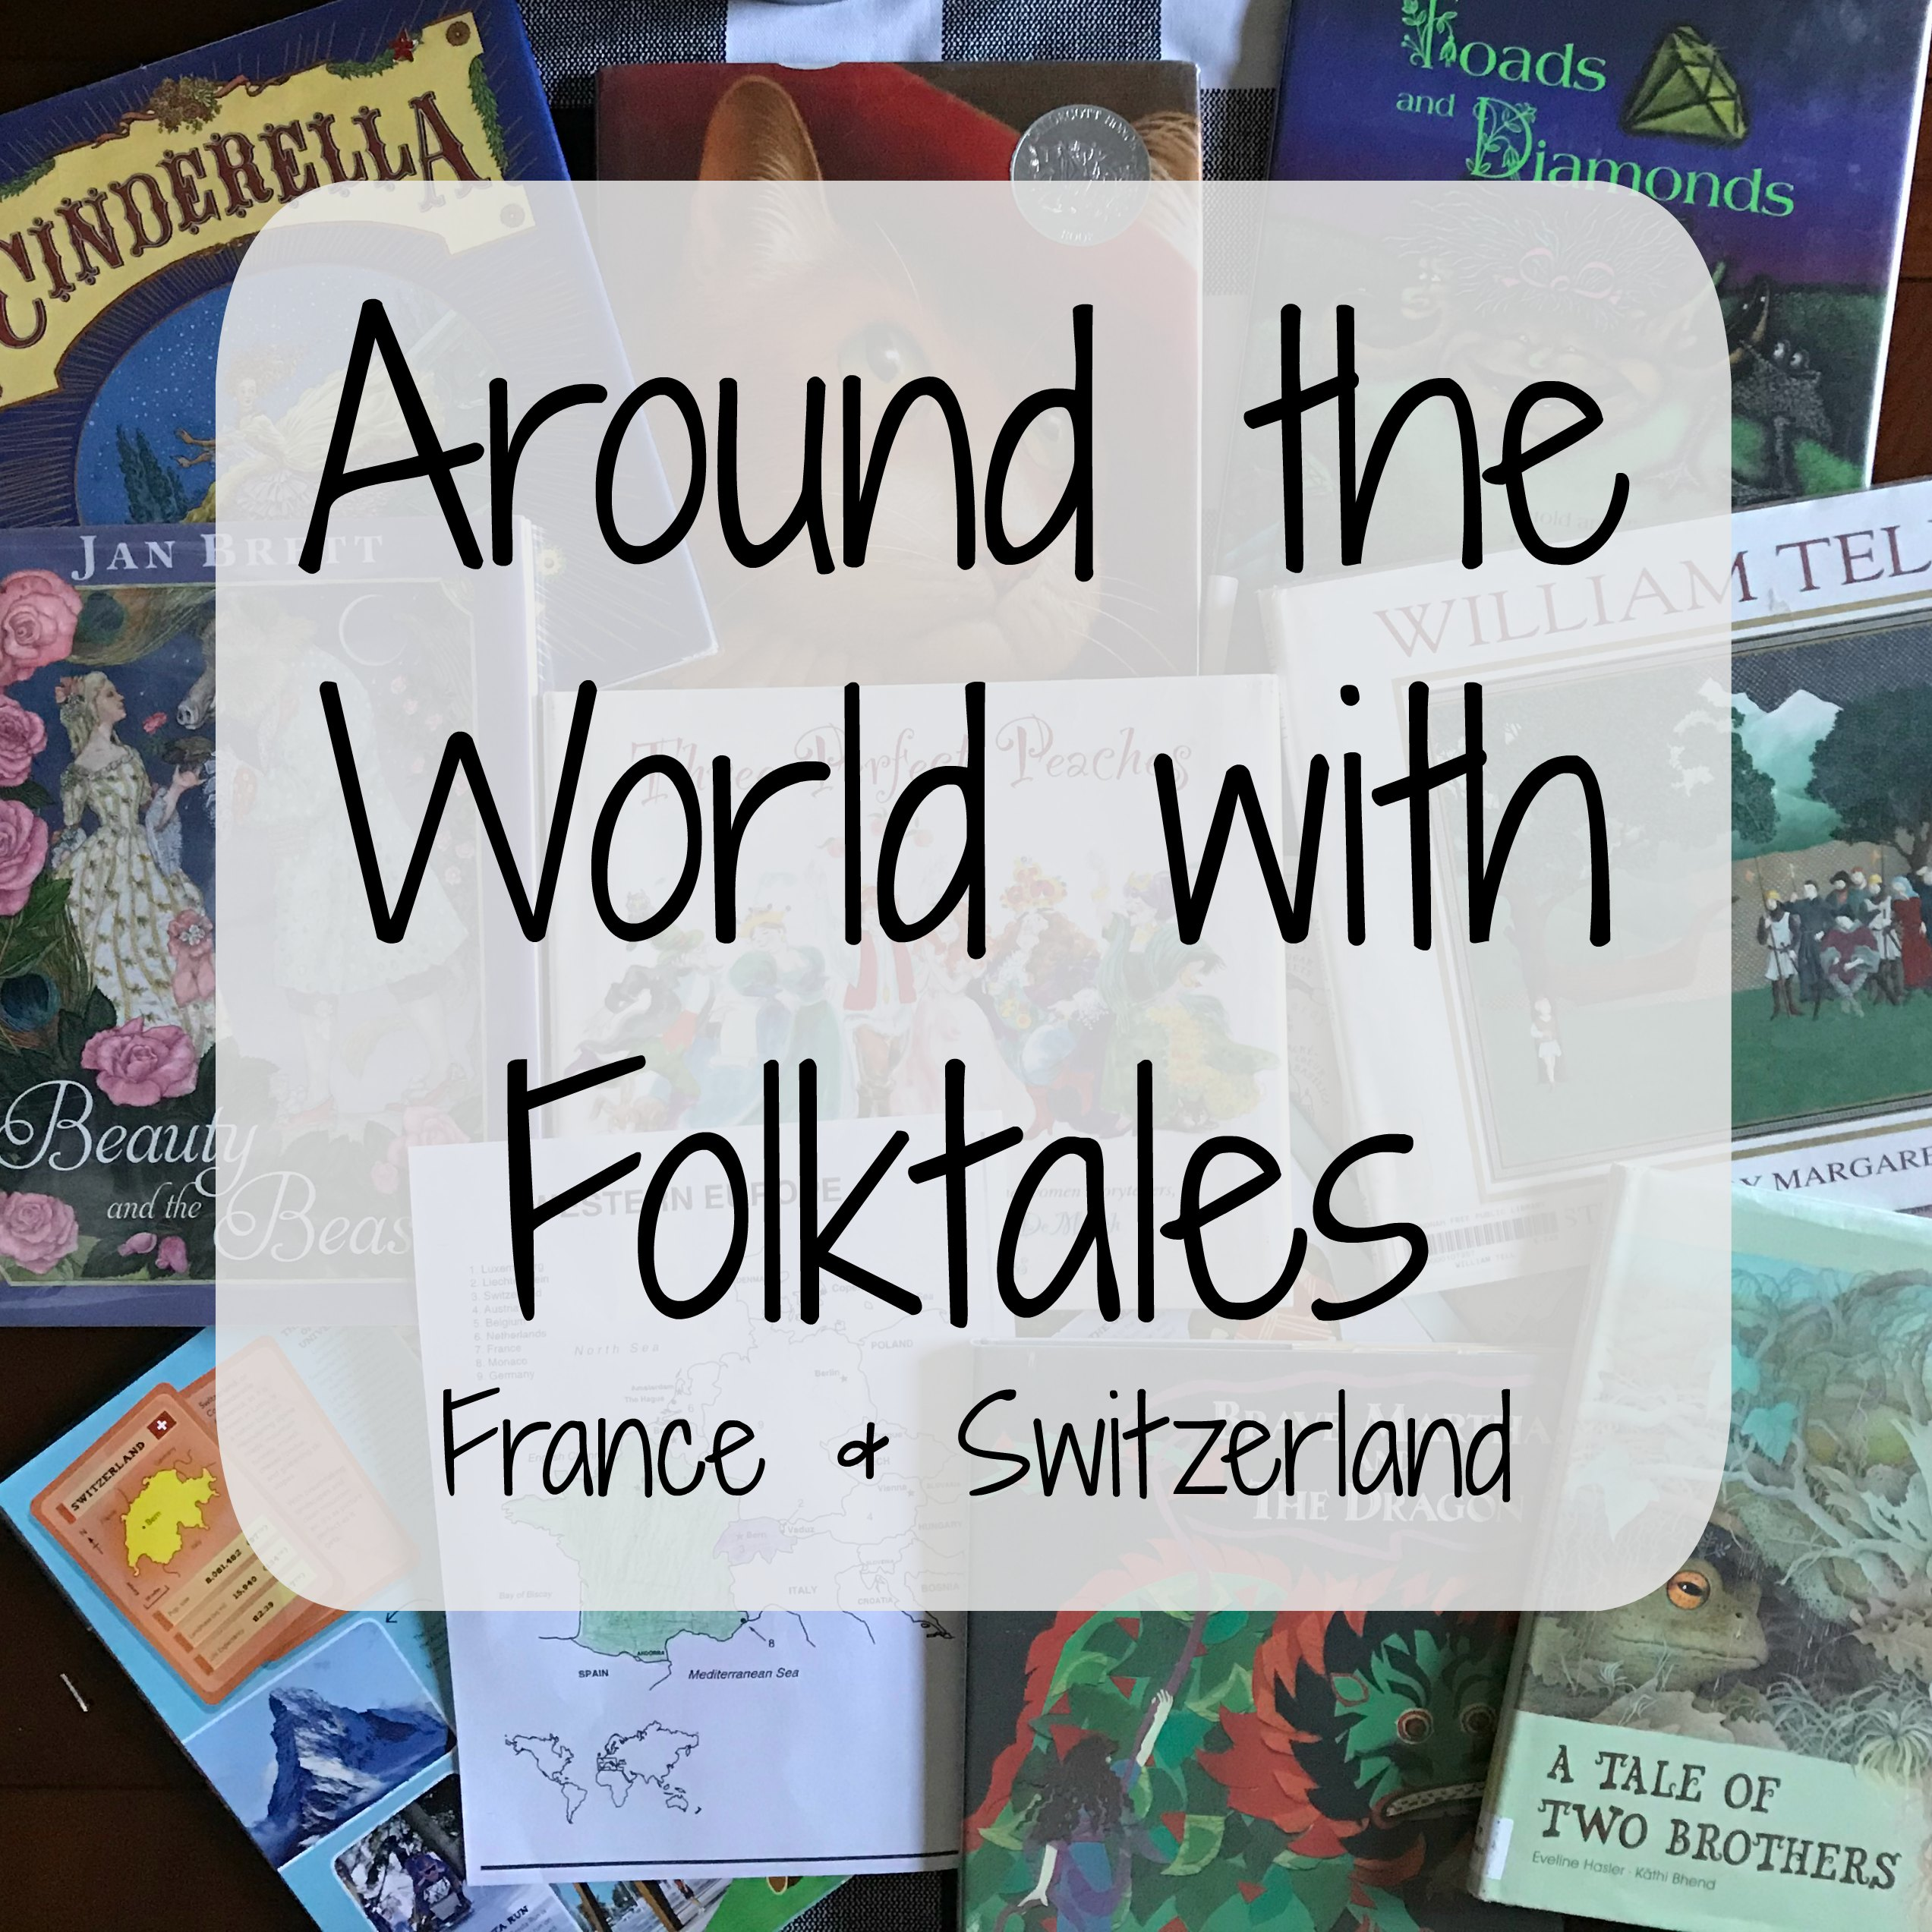 This is a photo of Printable Folktales throughout two brother